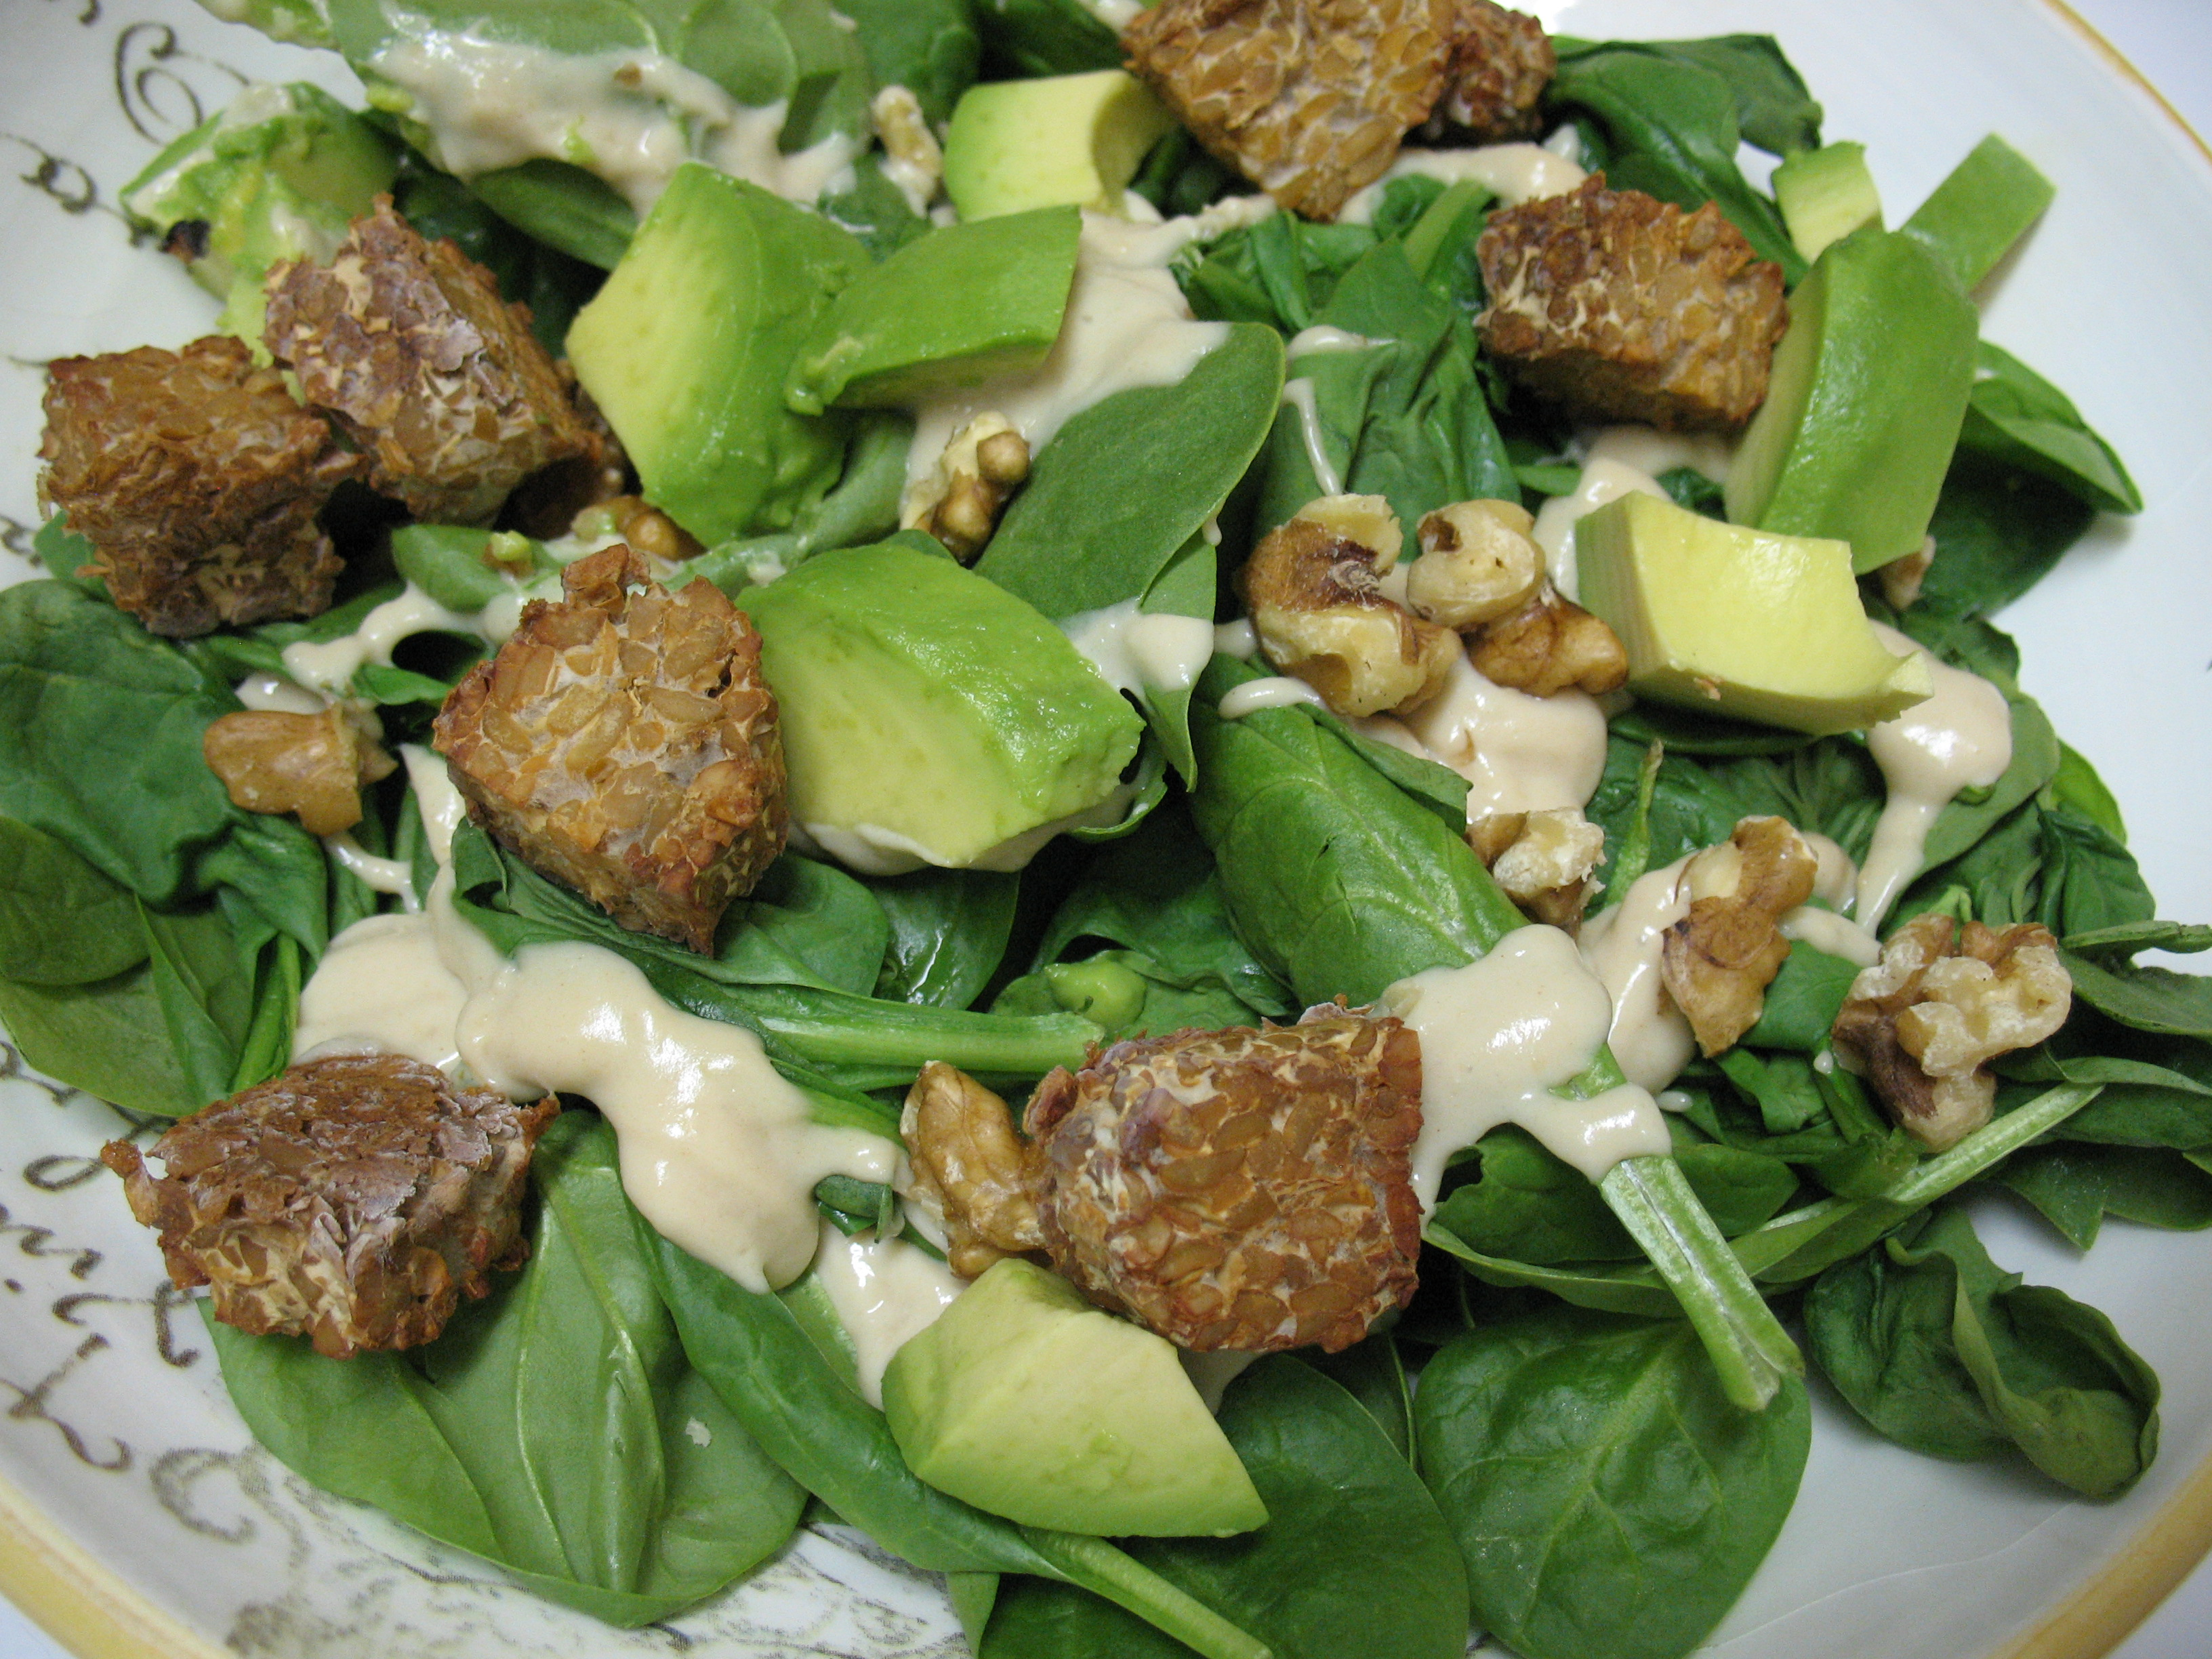 Spinach, roasted tempeh, avocado, walnuts, & my new favorite salad dressing..